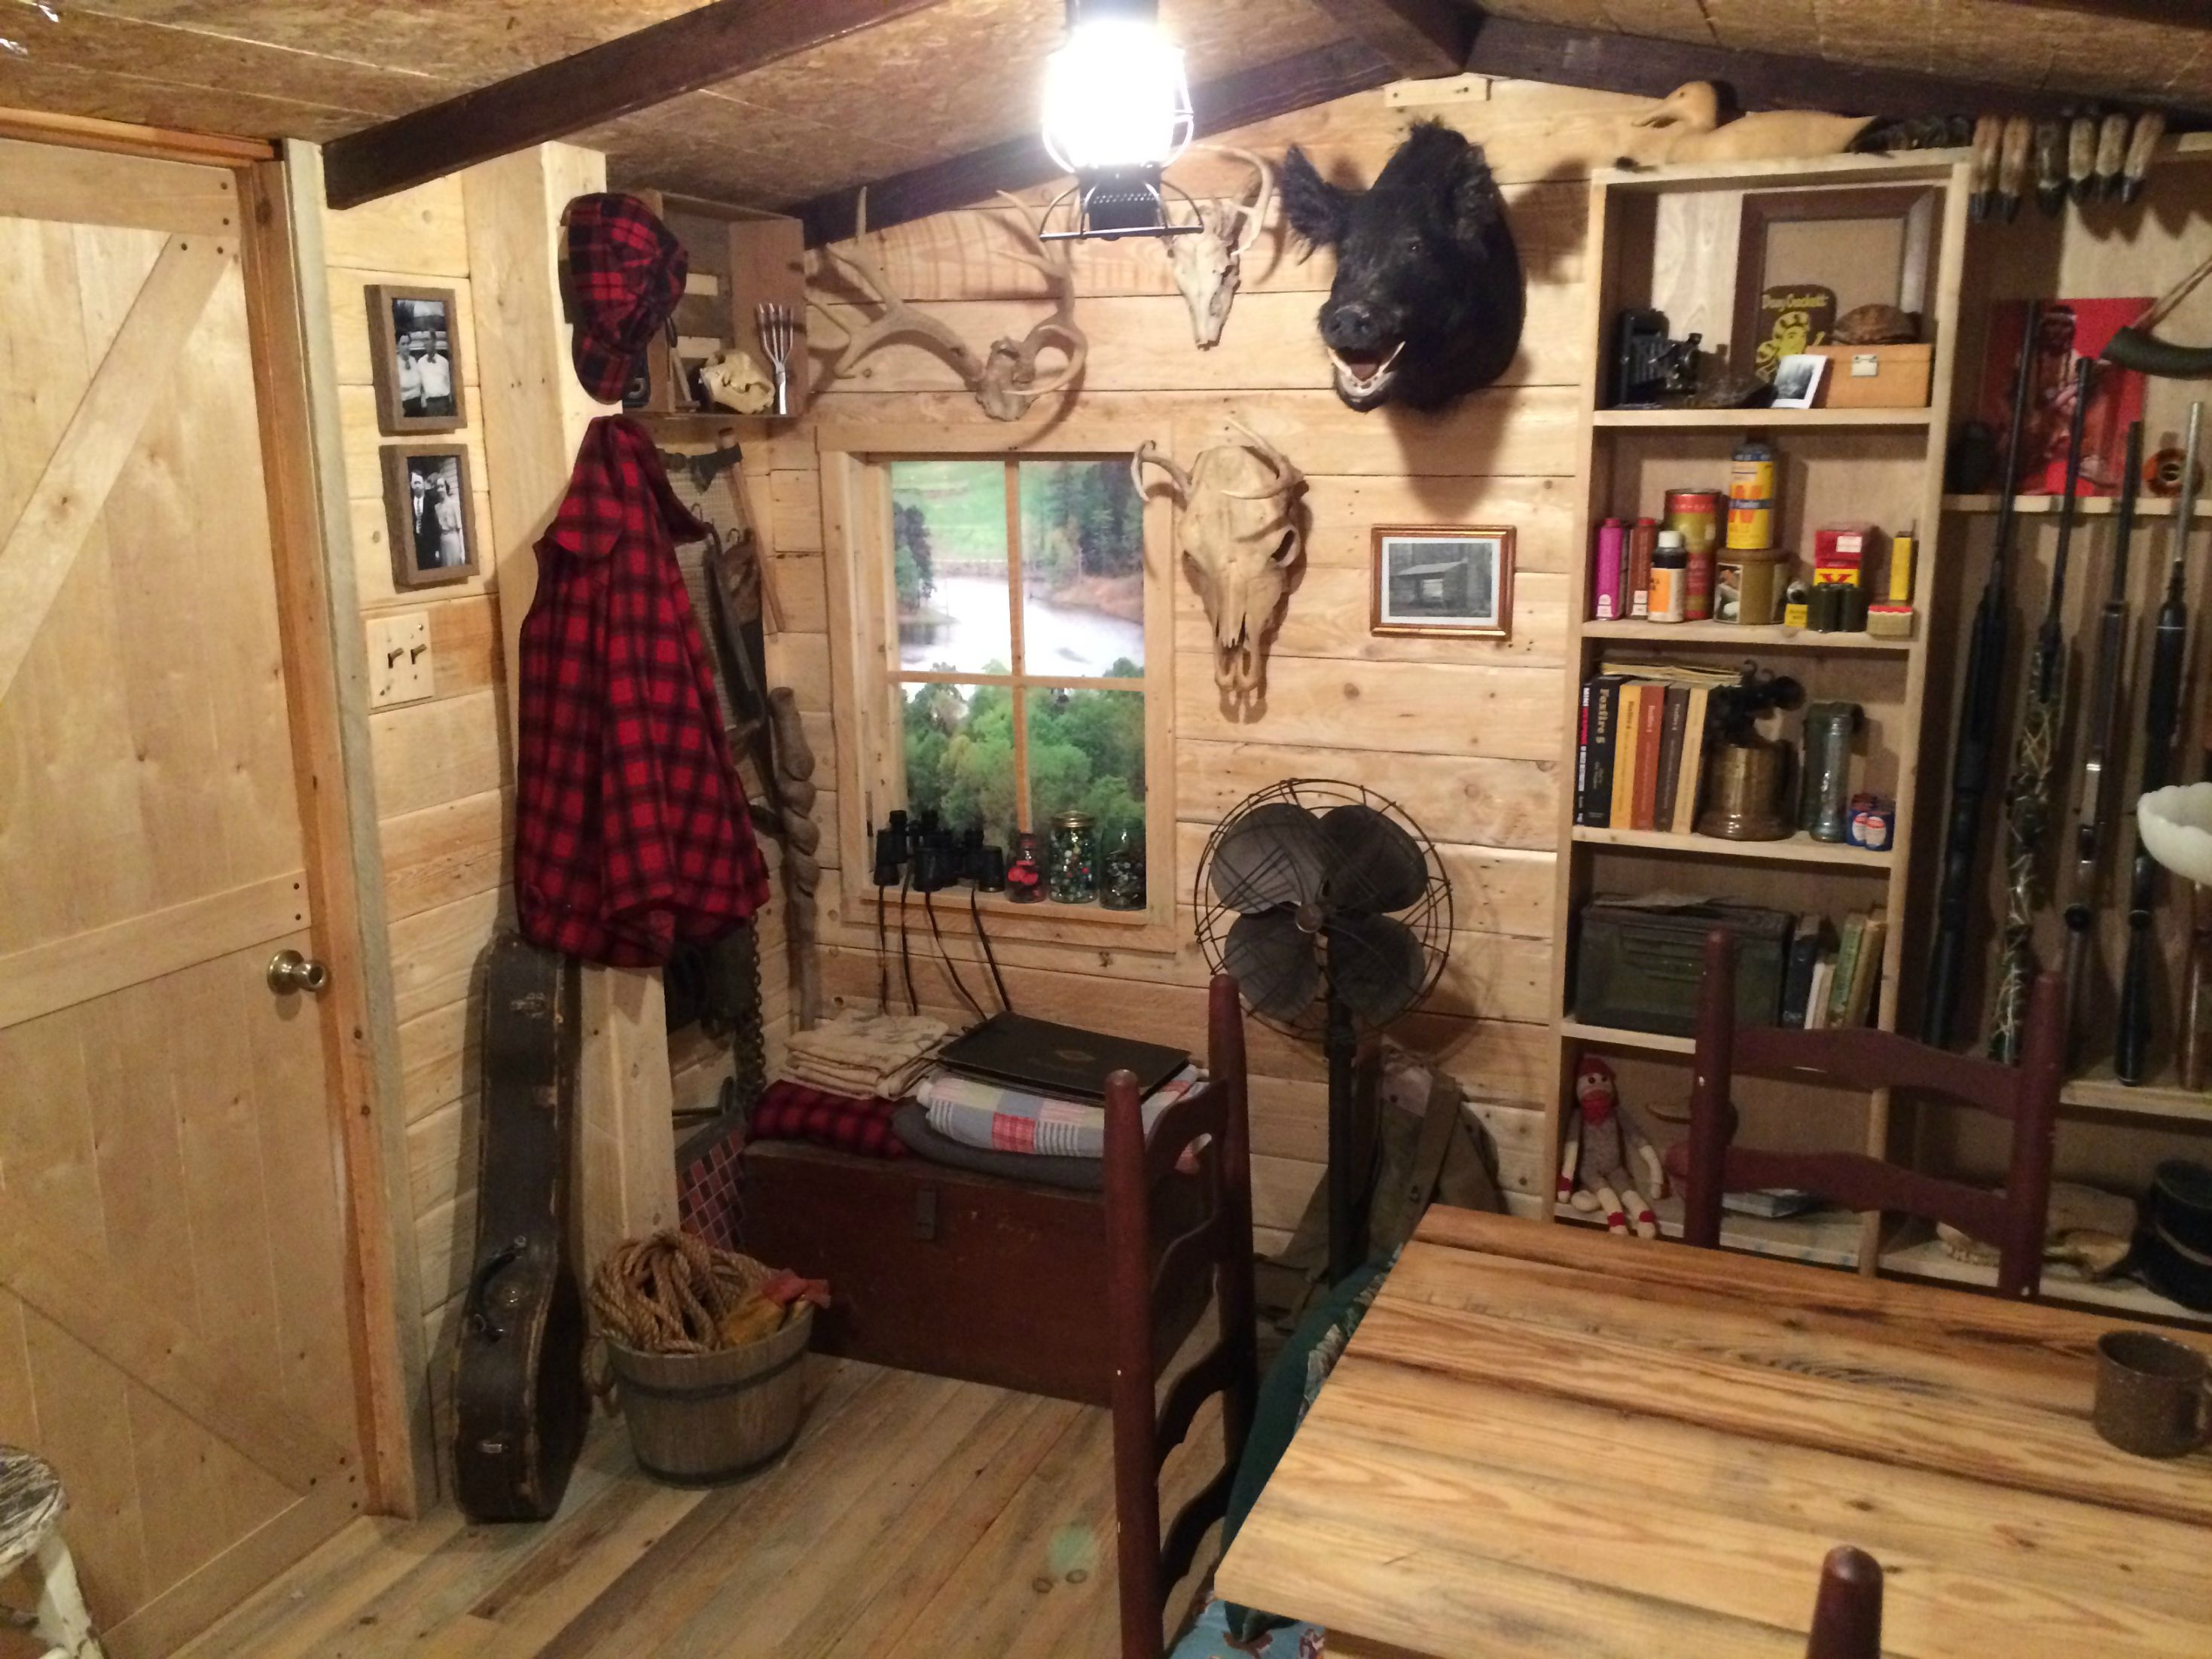 Man turns unused basement room into a log cabin replica | Make: